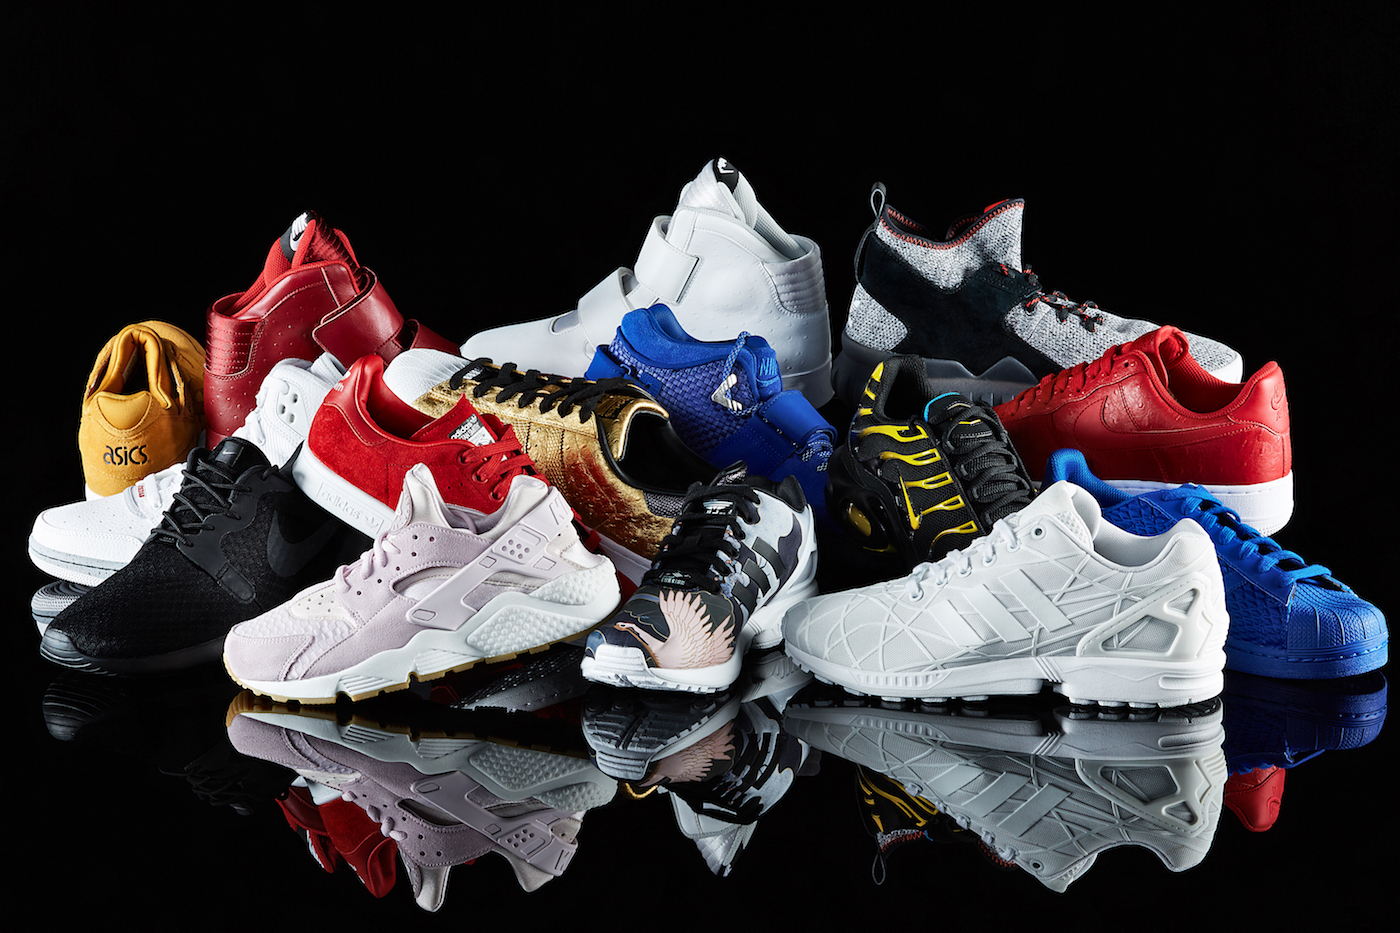 FOOTLOCKER_STILL_LIFE_02_12_2015_CAMPAIGN_01_0024